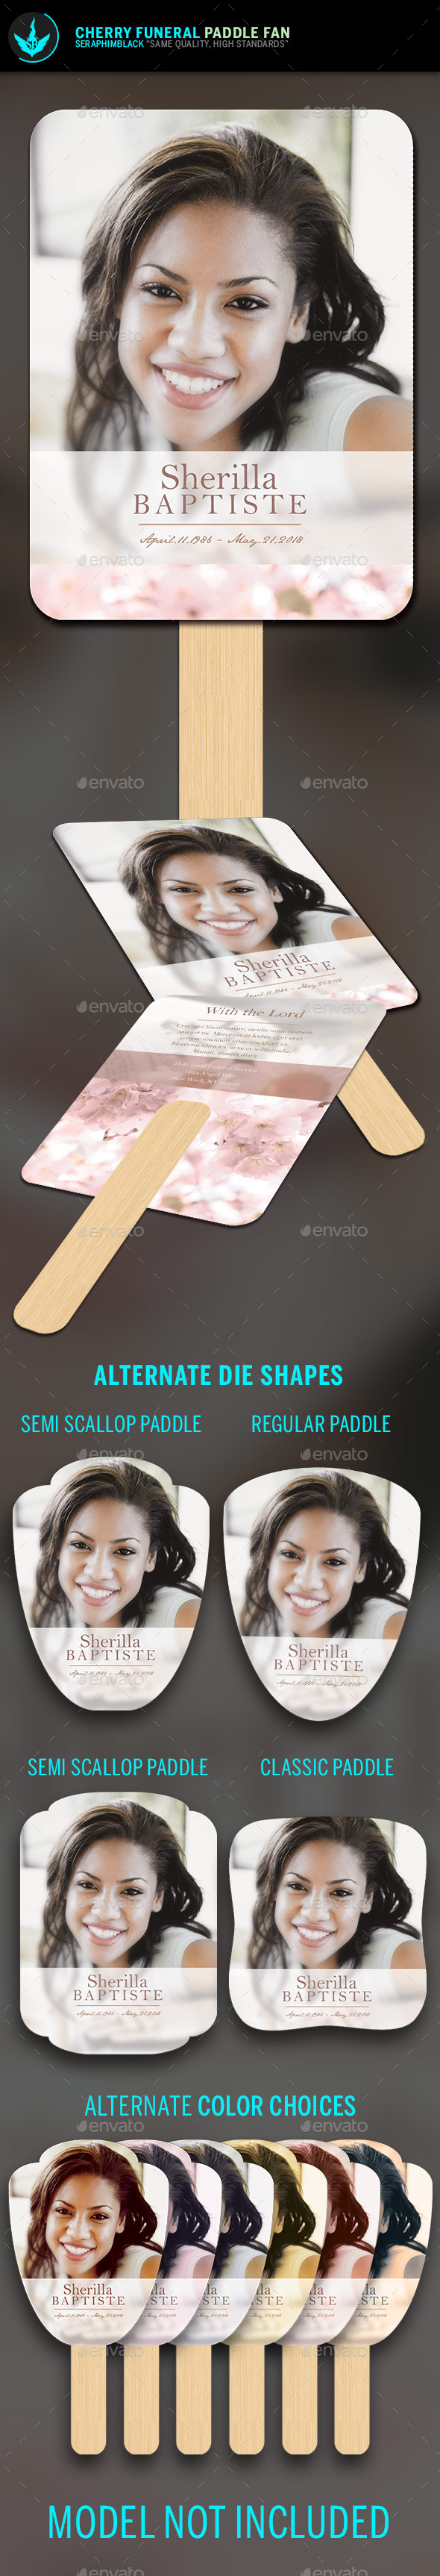 Cherry Funeral Paddle Fan Template